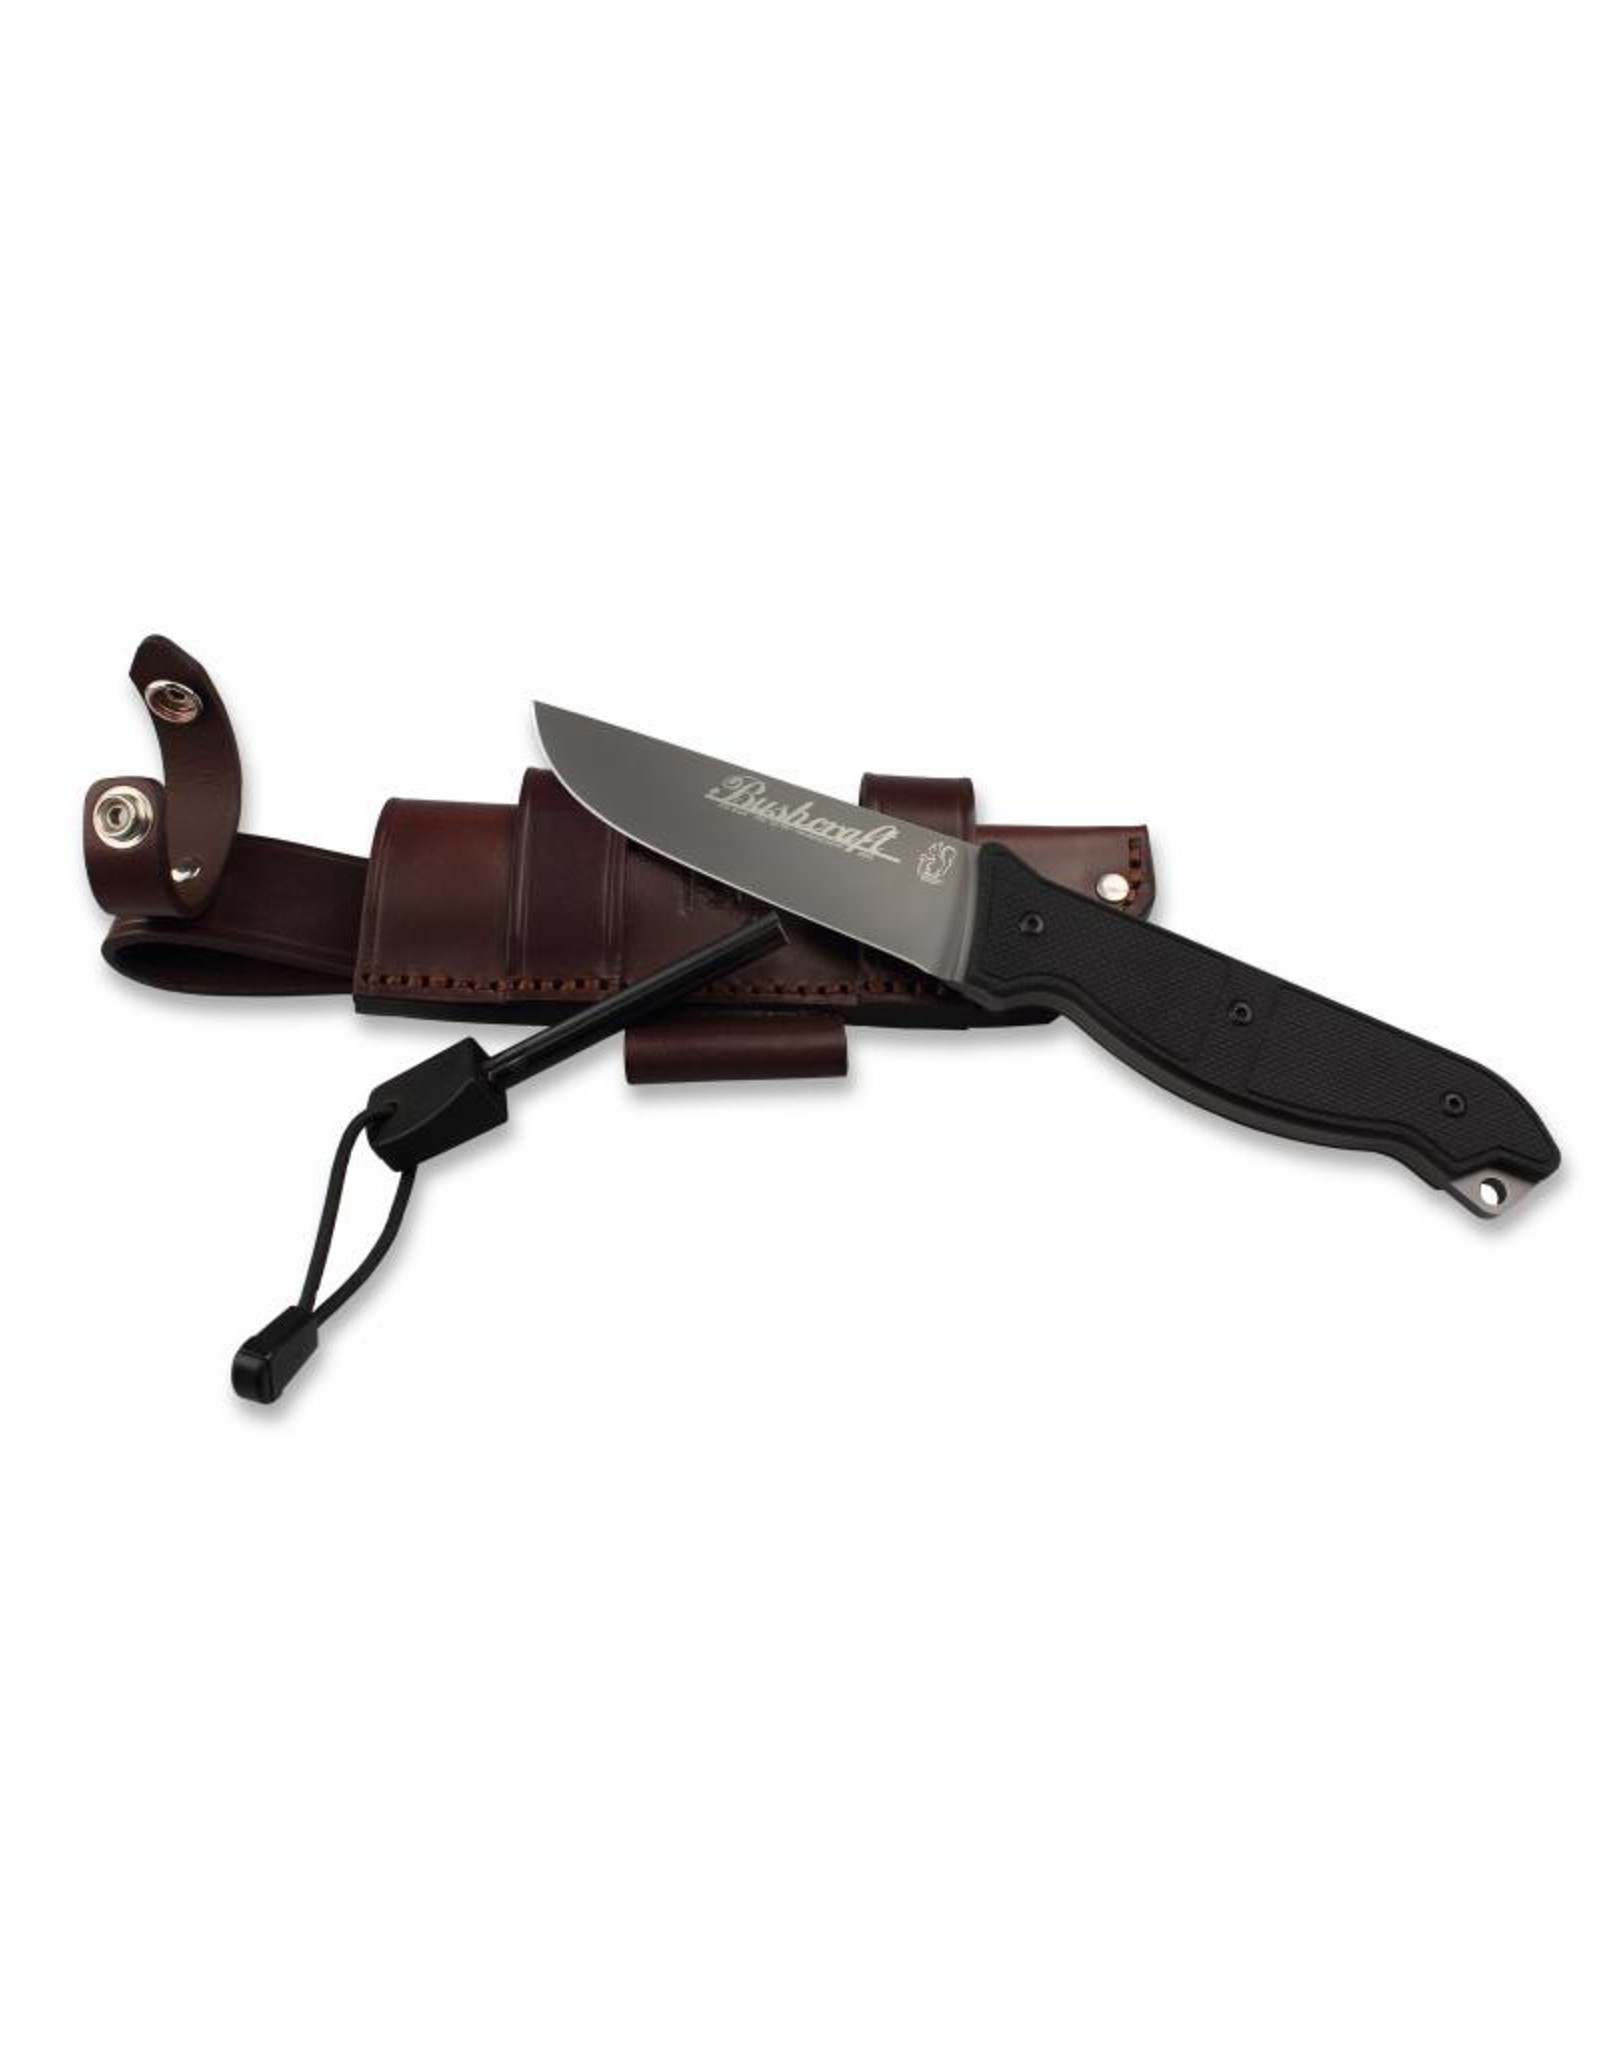 Original Eickhorn Solingen Outdoor EBK - Eickhorn Bushcraft Knife